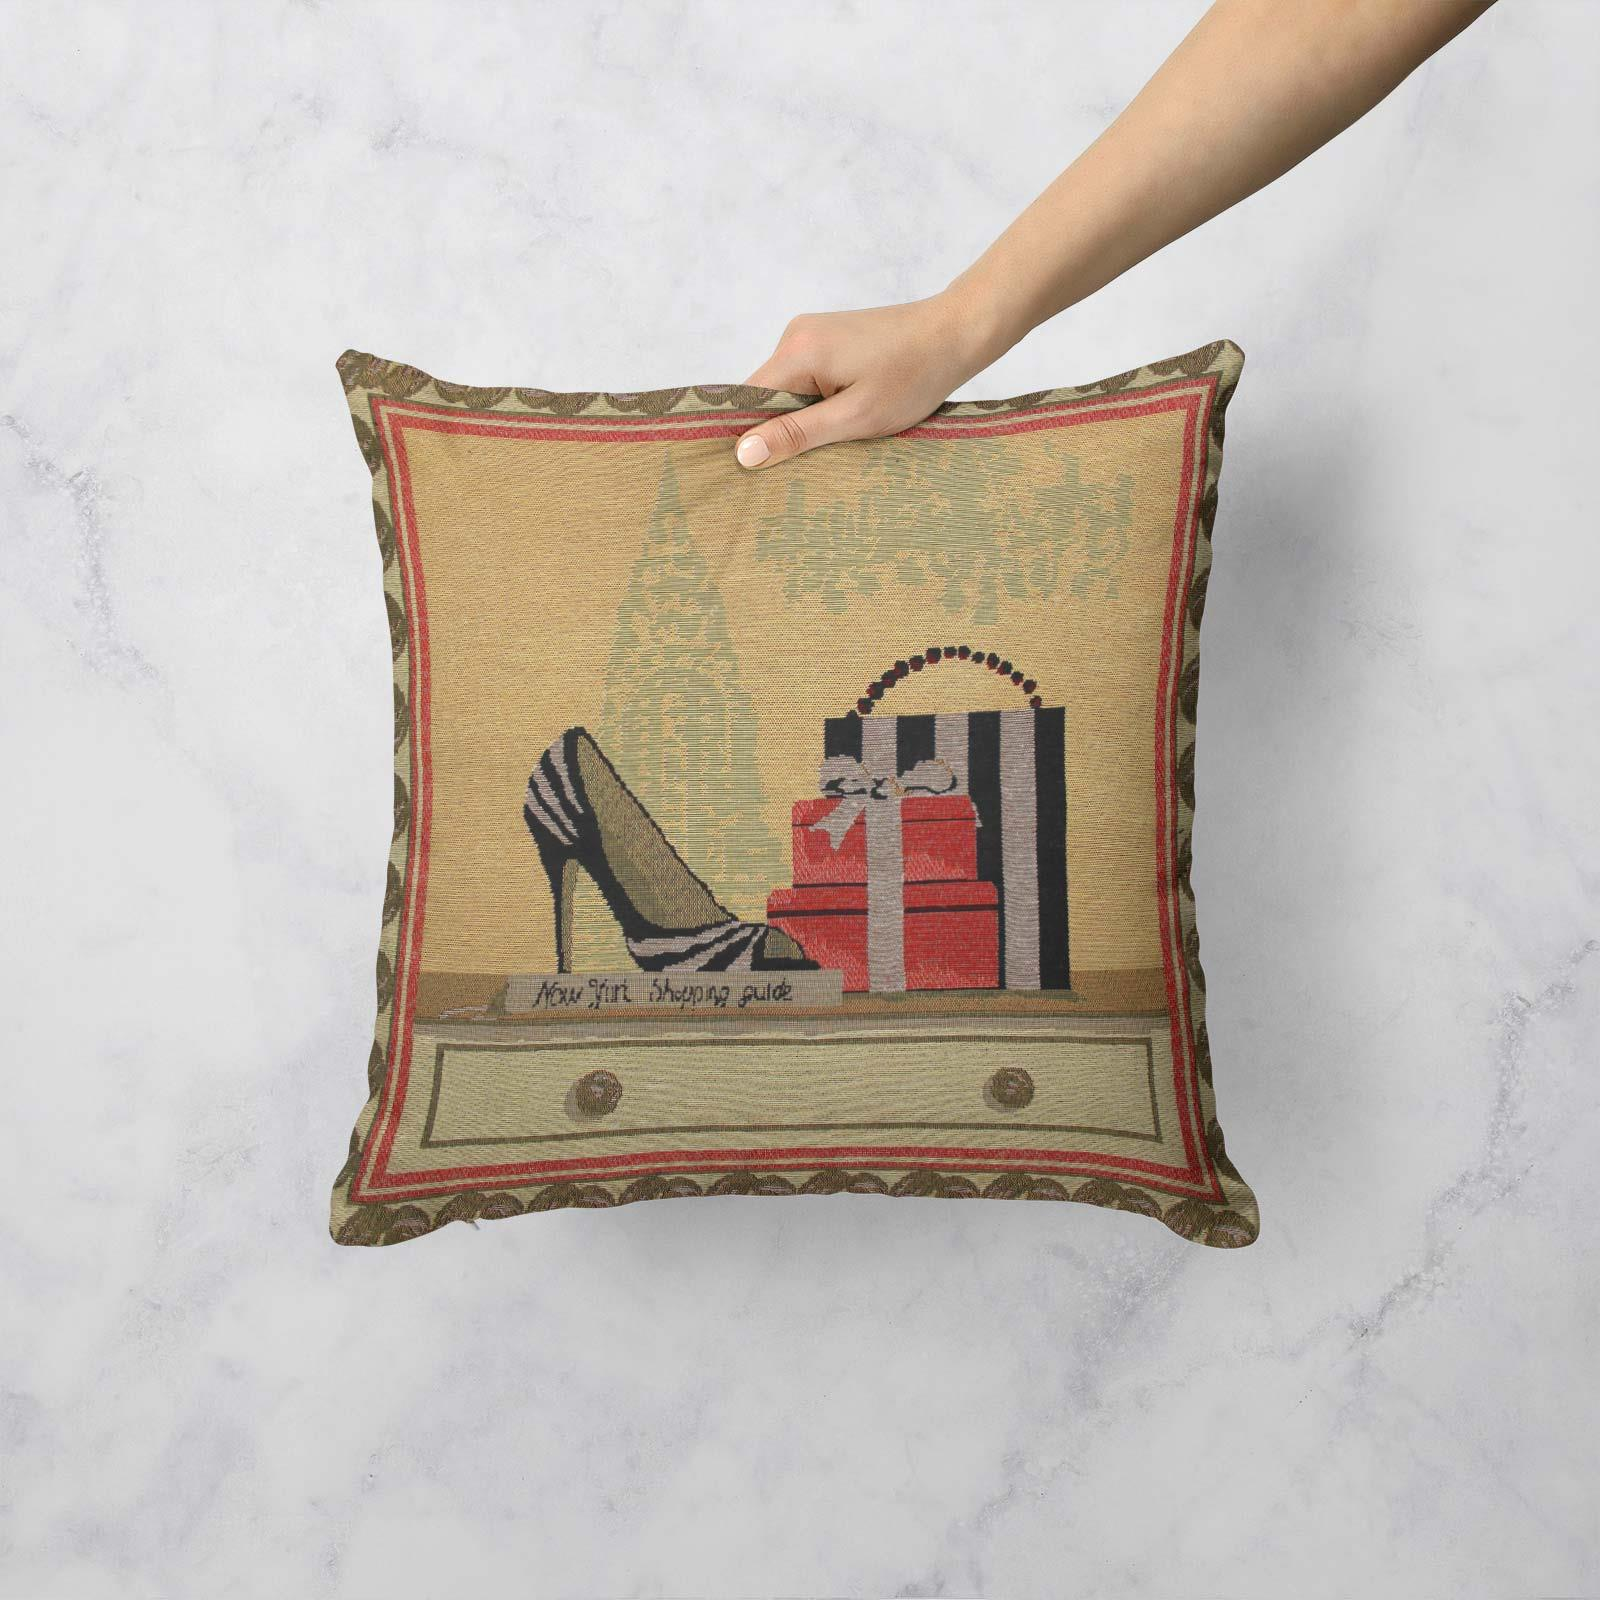 Tapestry-Cushion-Covers-Vintage-Pillow-Cover-Collection-18-034-45cm-Filled-Cushions thumbnail 146